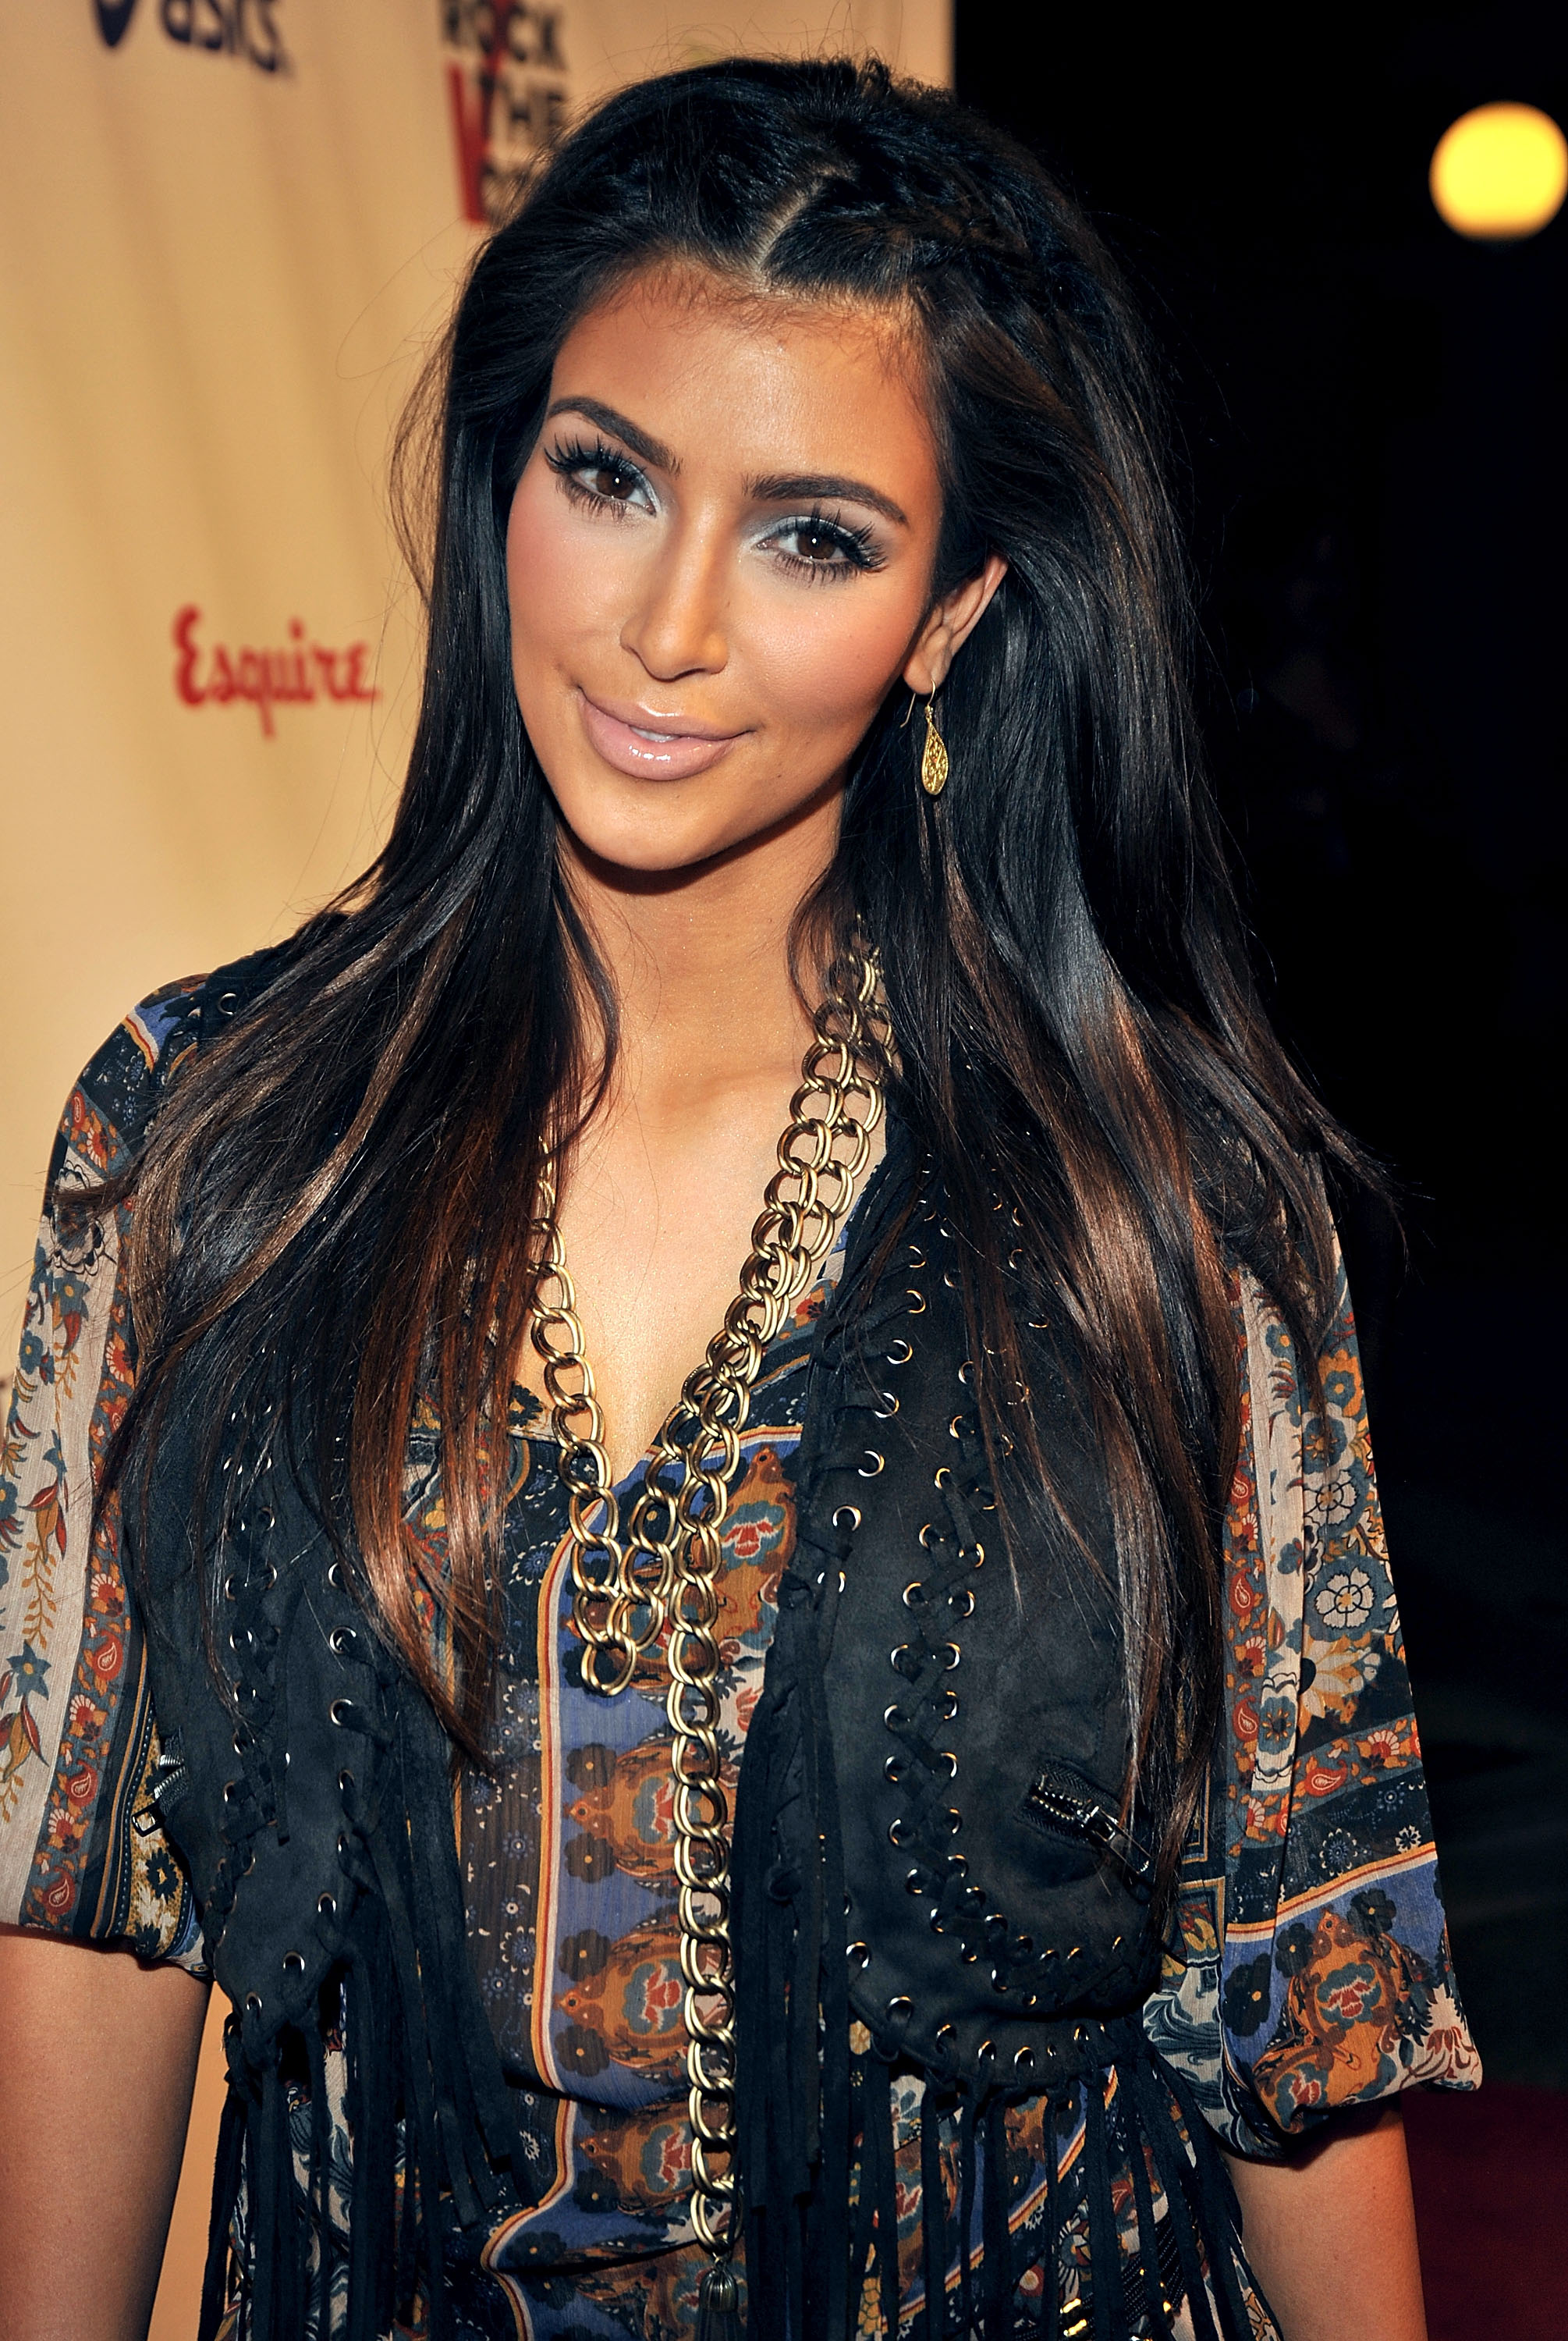 09045_Celebutopia-Kim_Kardashian-Rock_The_Vote-01_122_235lo.jpg